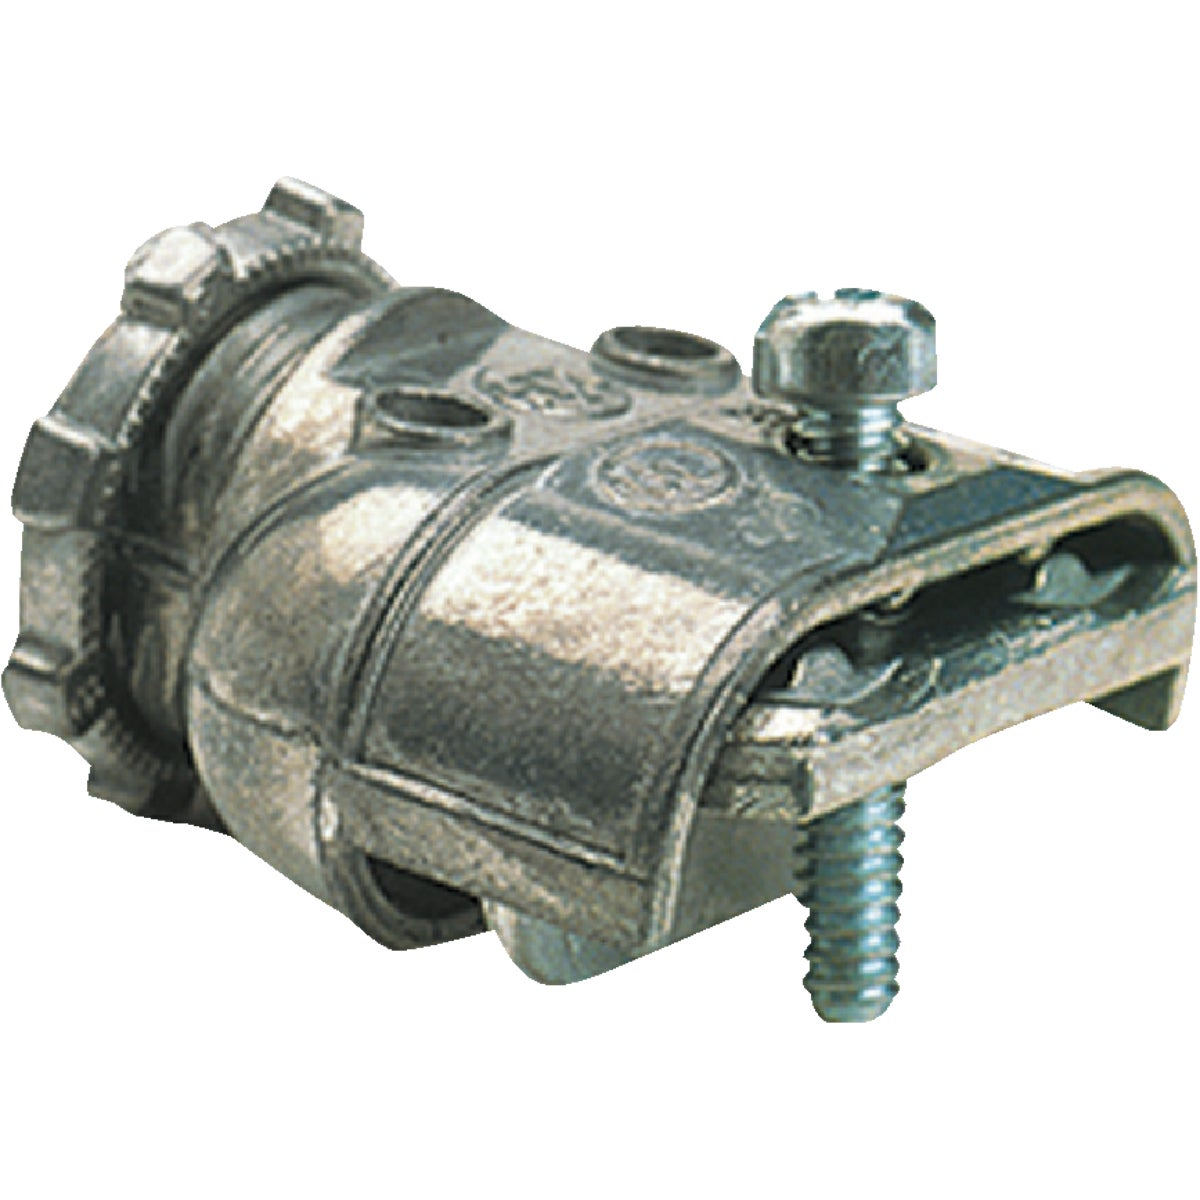 FLEX DUPLEX CONNECTOR - XC2101 by Thomas & Betts